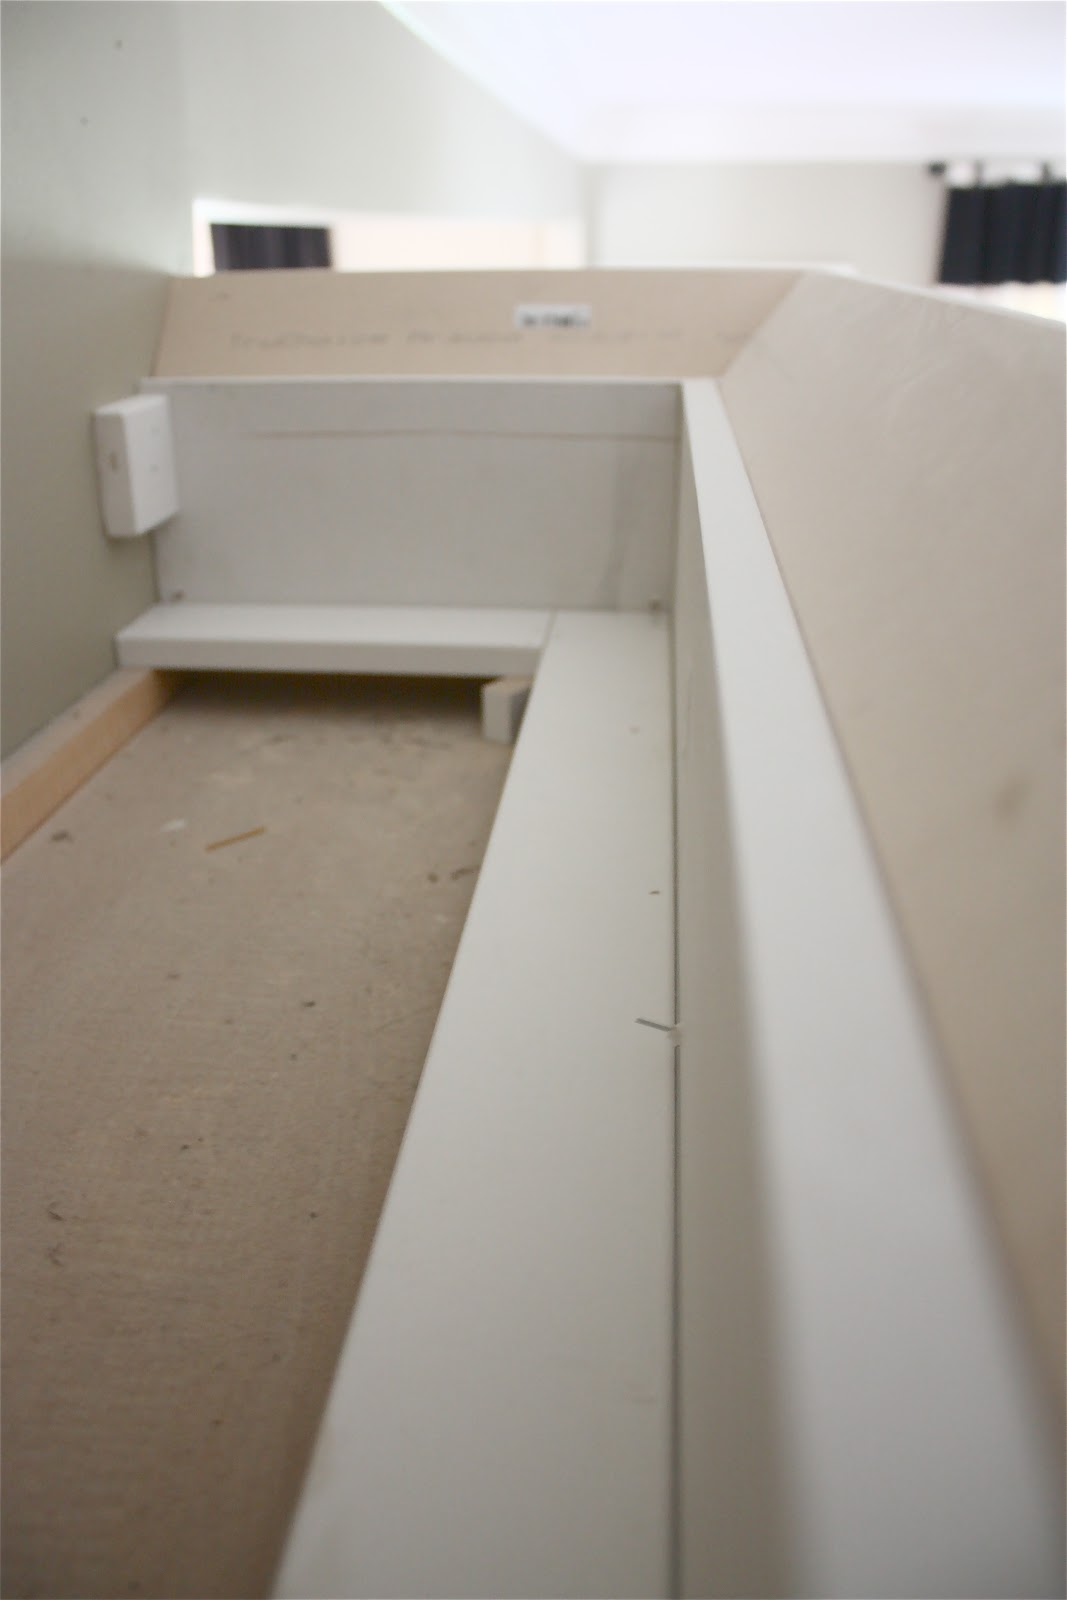 Types Of Crown Molding For Kitchen Cabinets The Yellow Cape Cod Making Cabinets Taller Builder